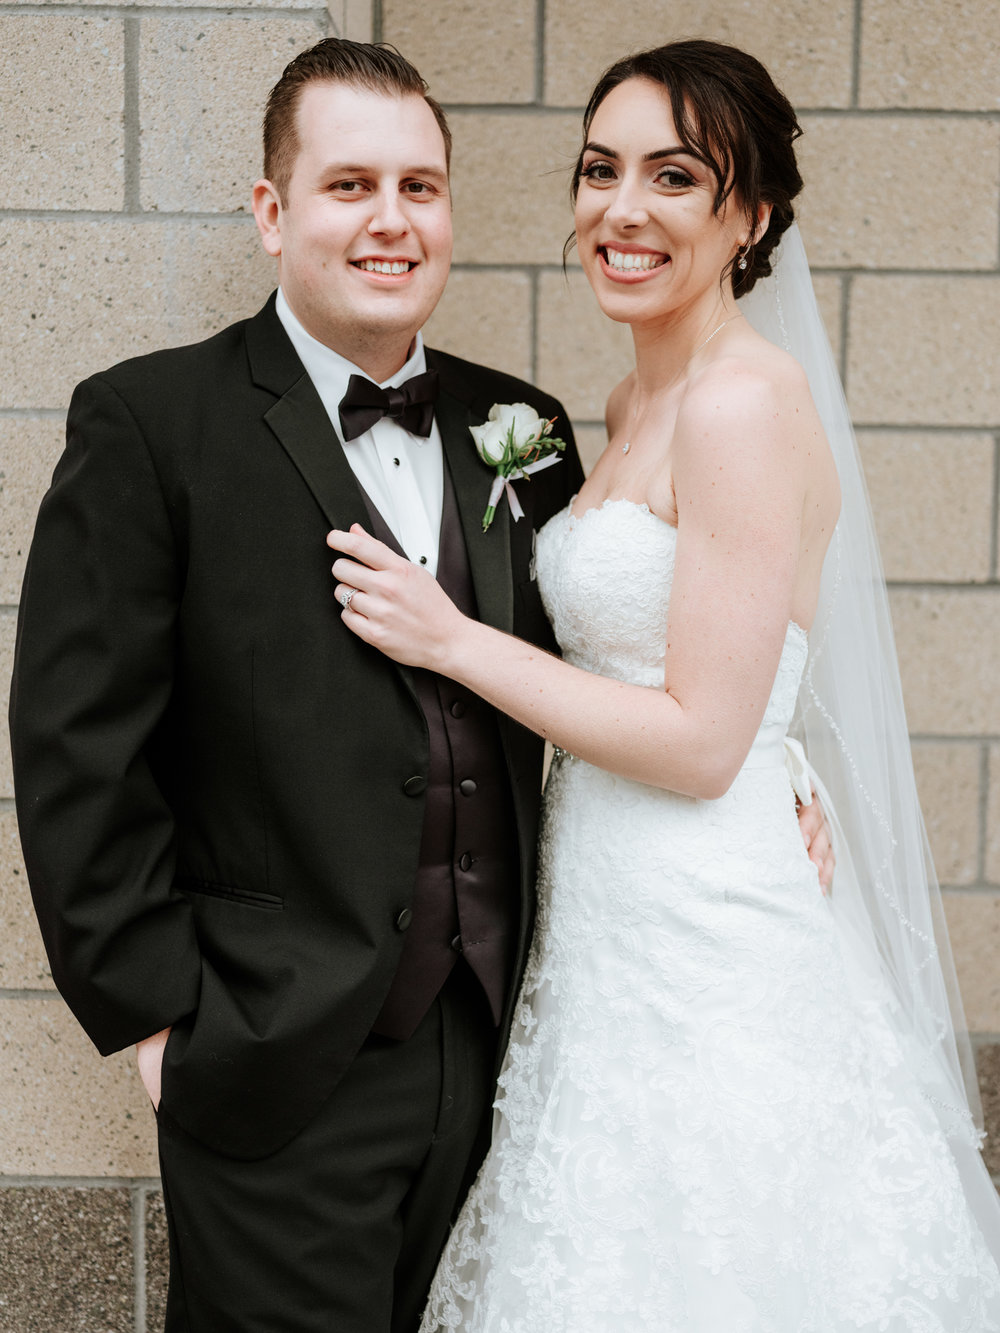 Stolen Glimpses Seattle Wedding Photographers 25.jpg